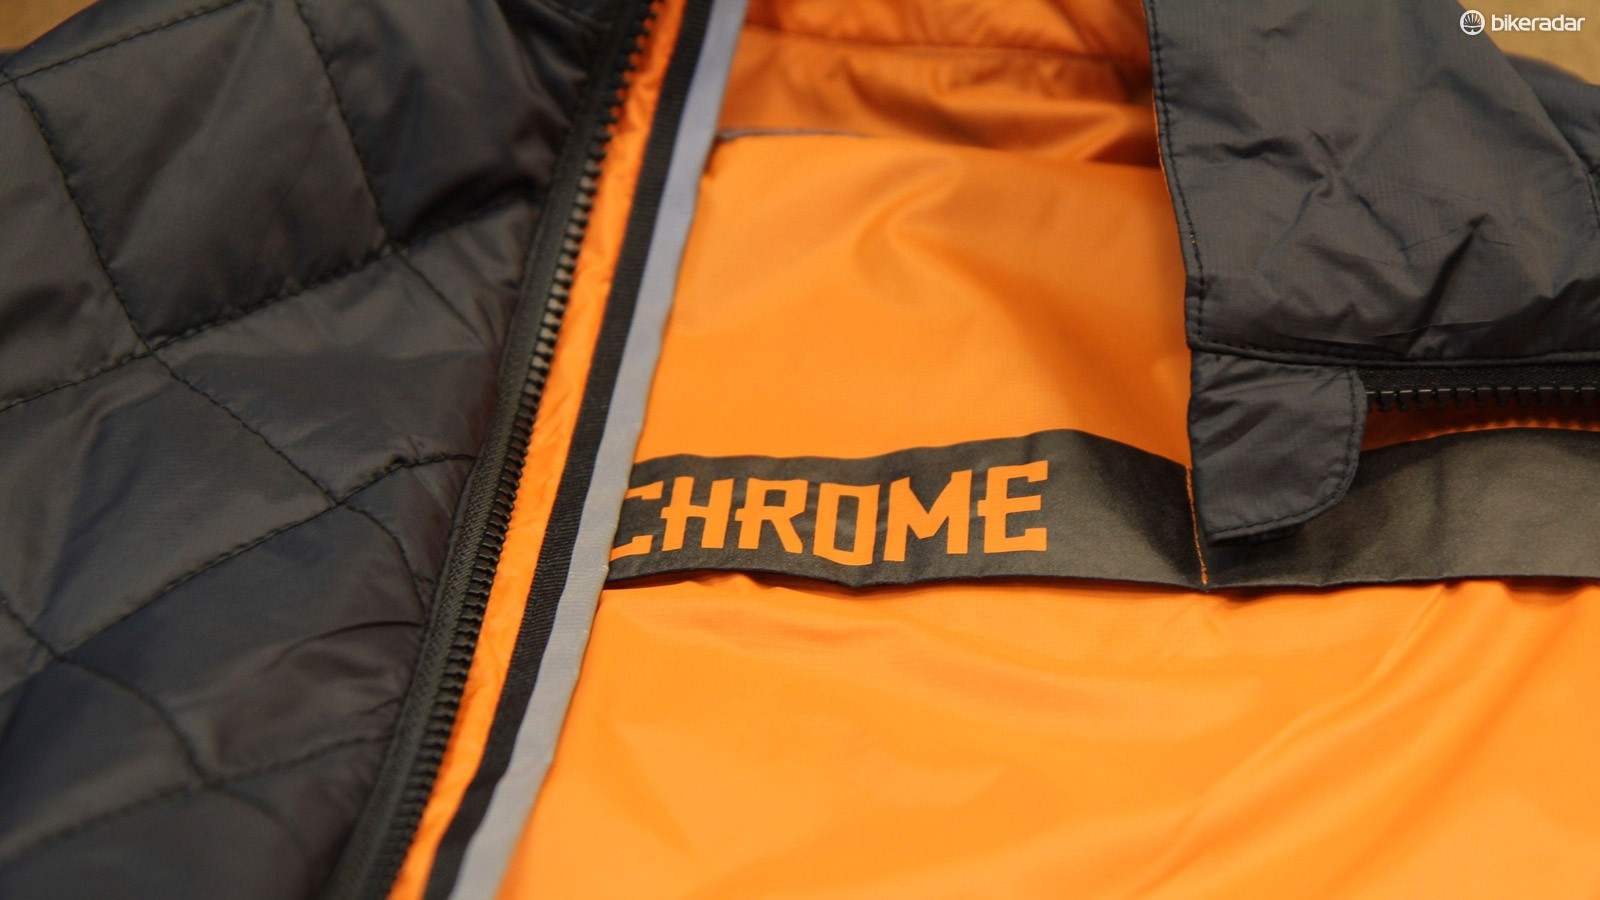 Chrome has successfully expanded its brand from messenger bags